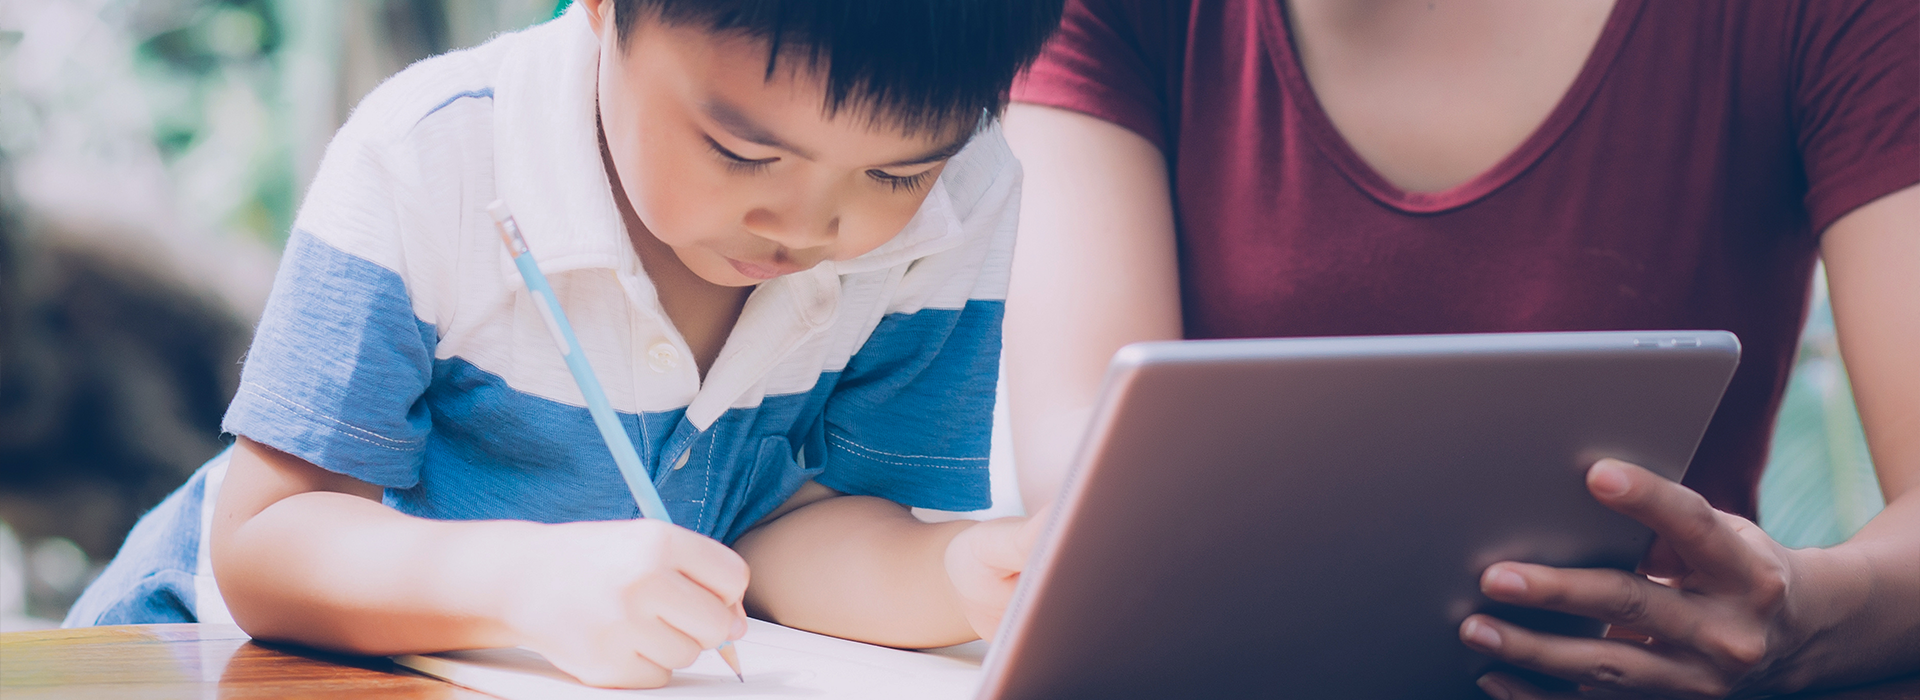 young boy drawing a picture from an ipad screen